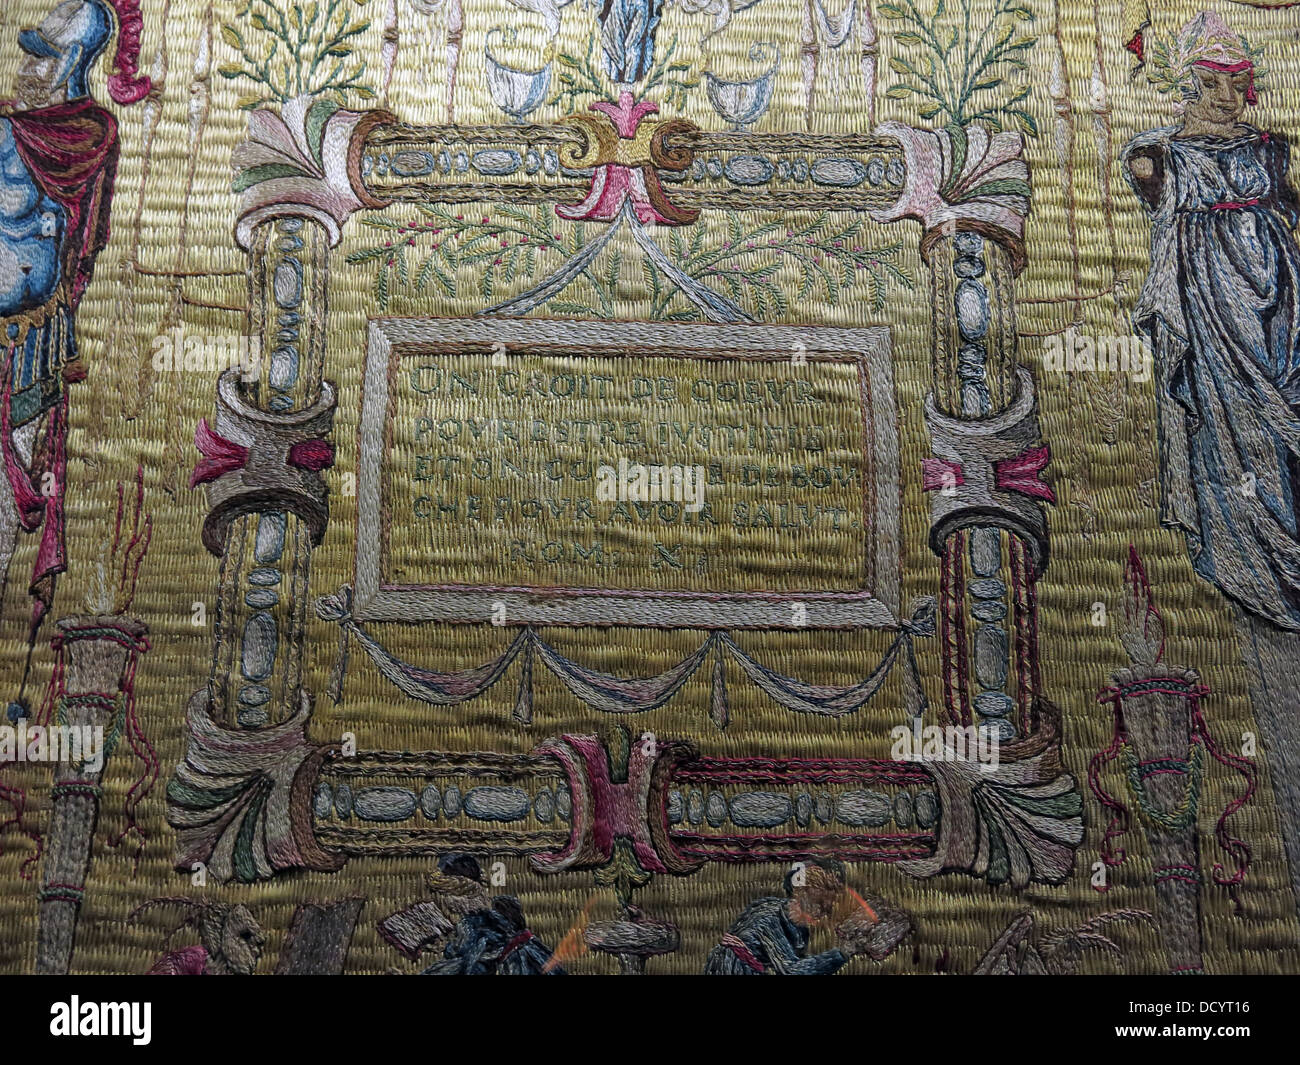 Ecclesiastical Tapestry from Waddesdon Manor NT, bucks England, UK - Stock Image